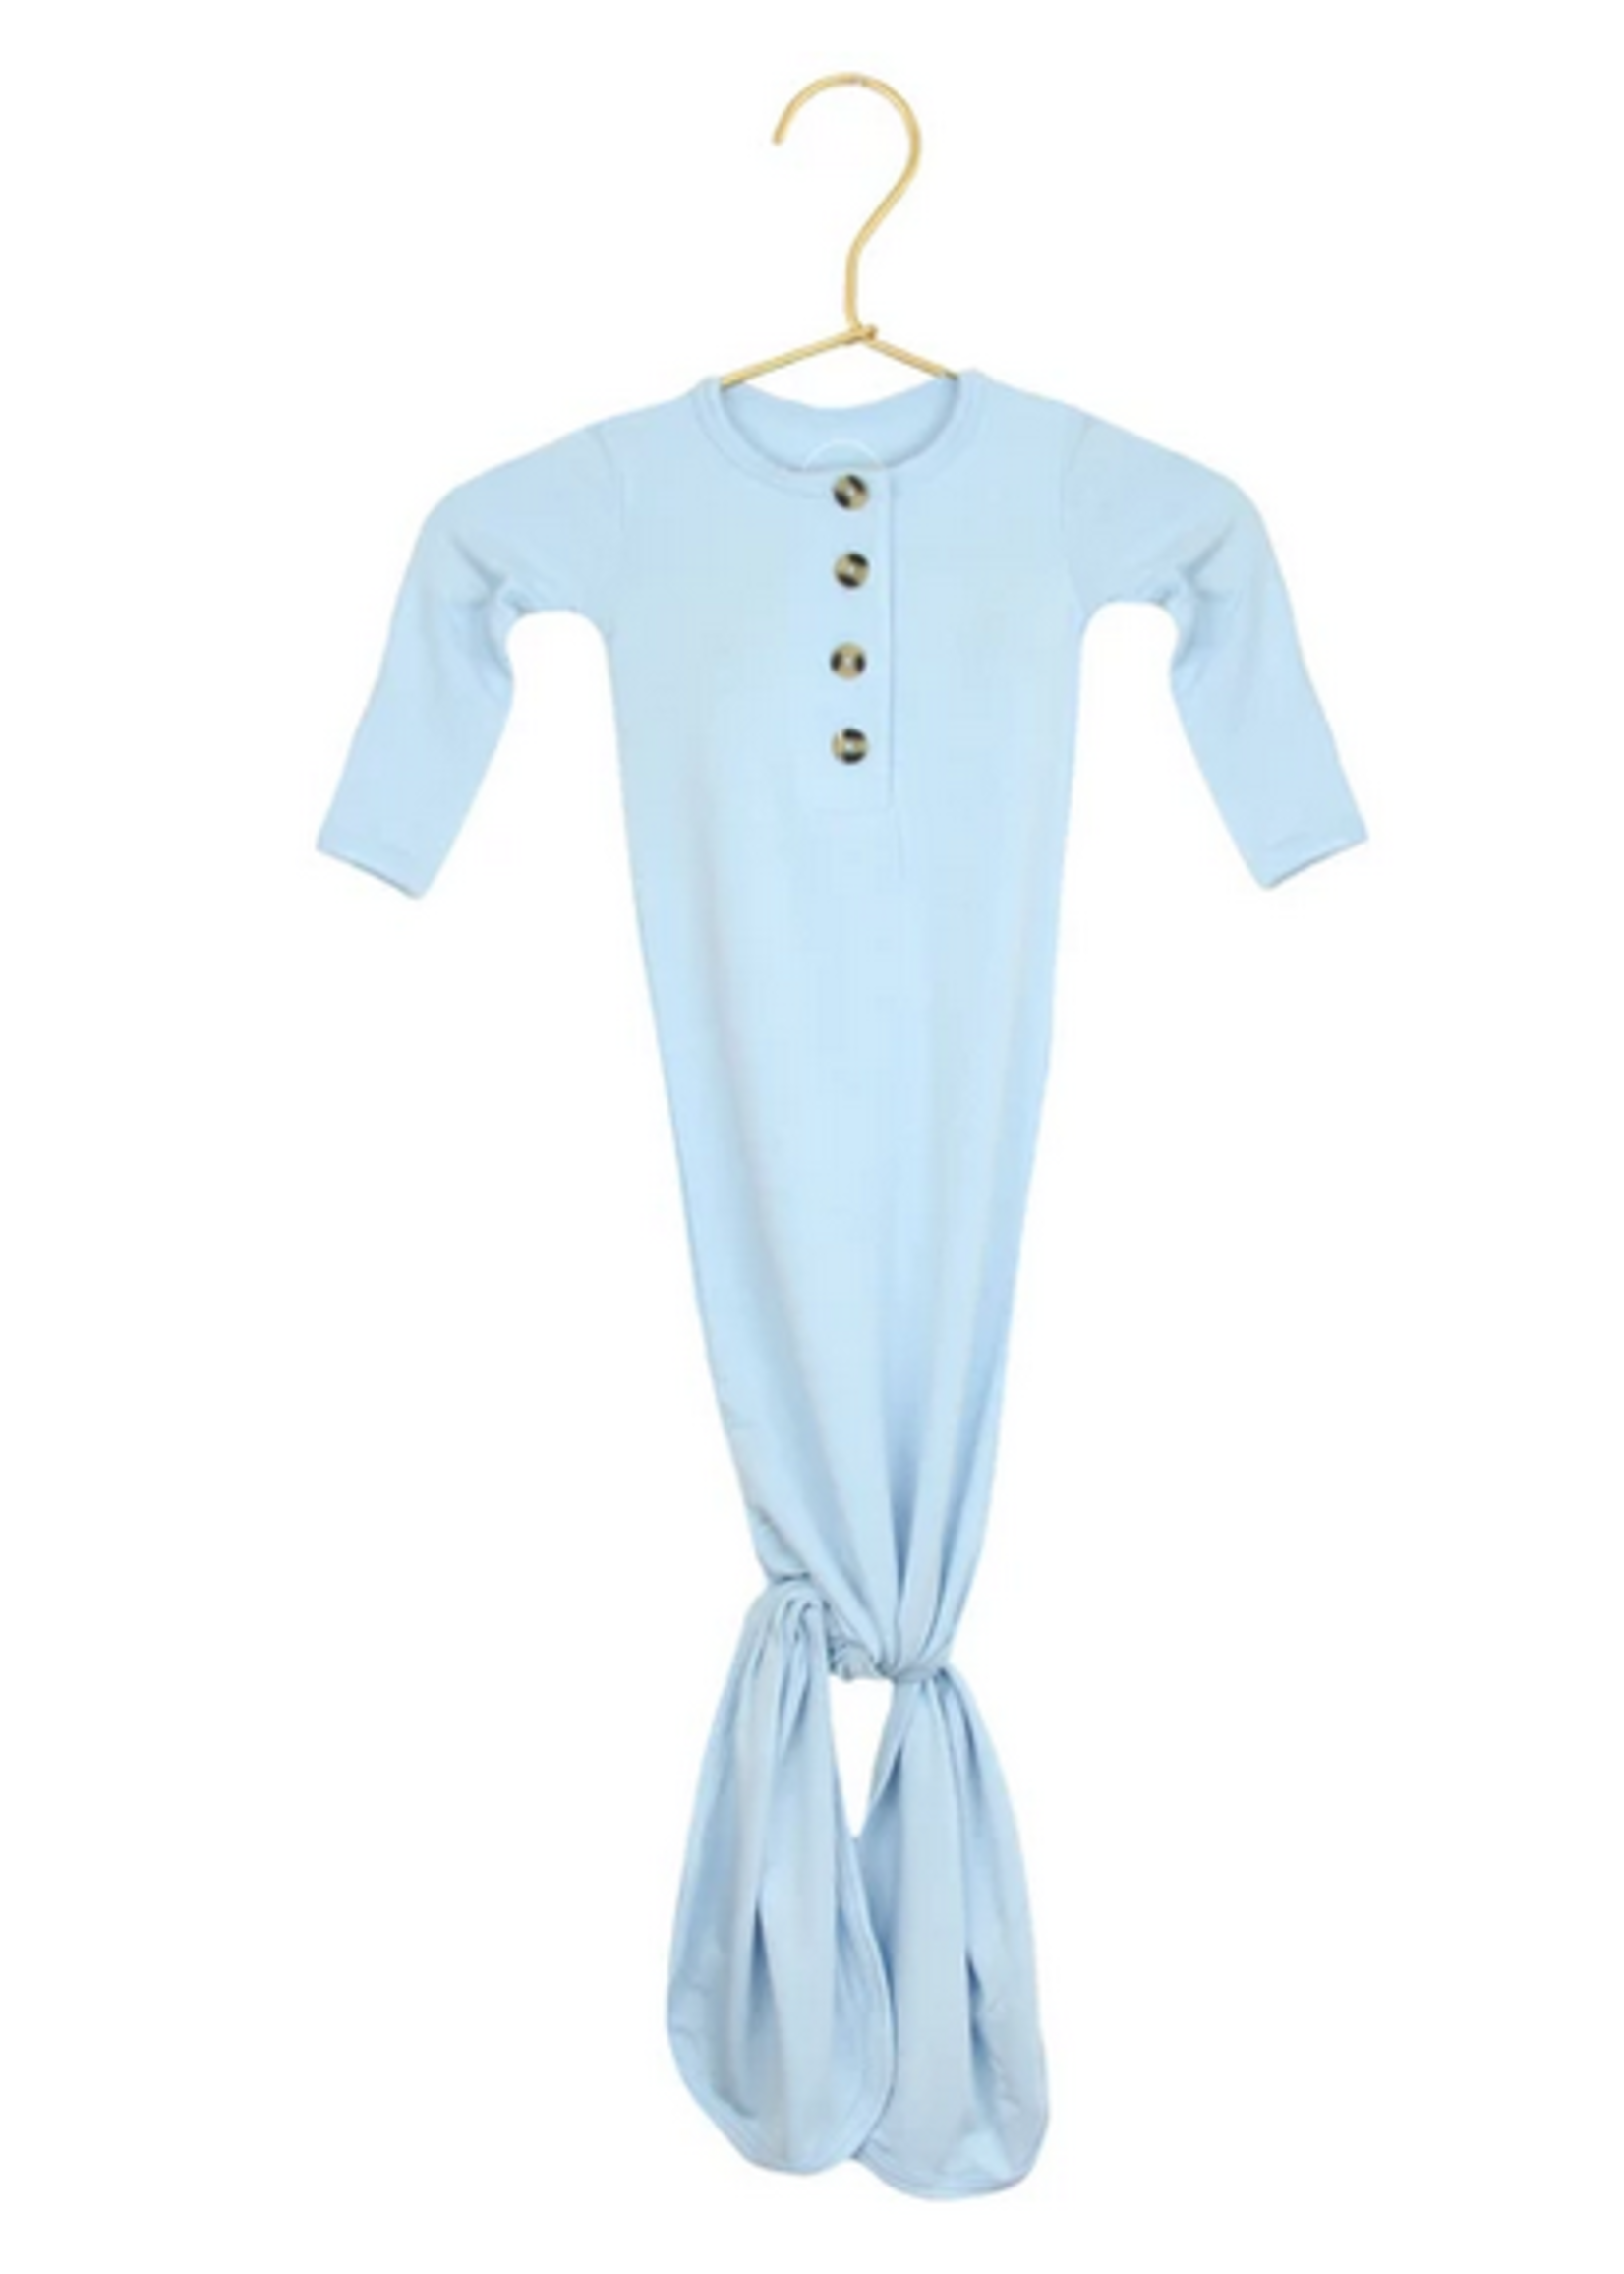 Elitaire Petite Jude Baby Blue Knotted Gown 3-6 Months